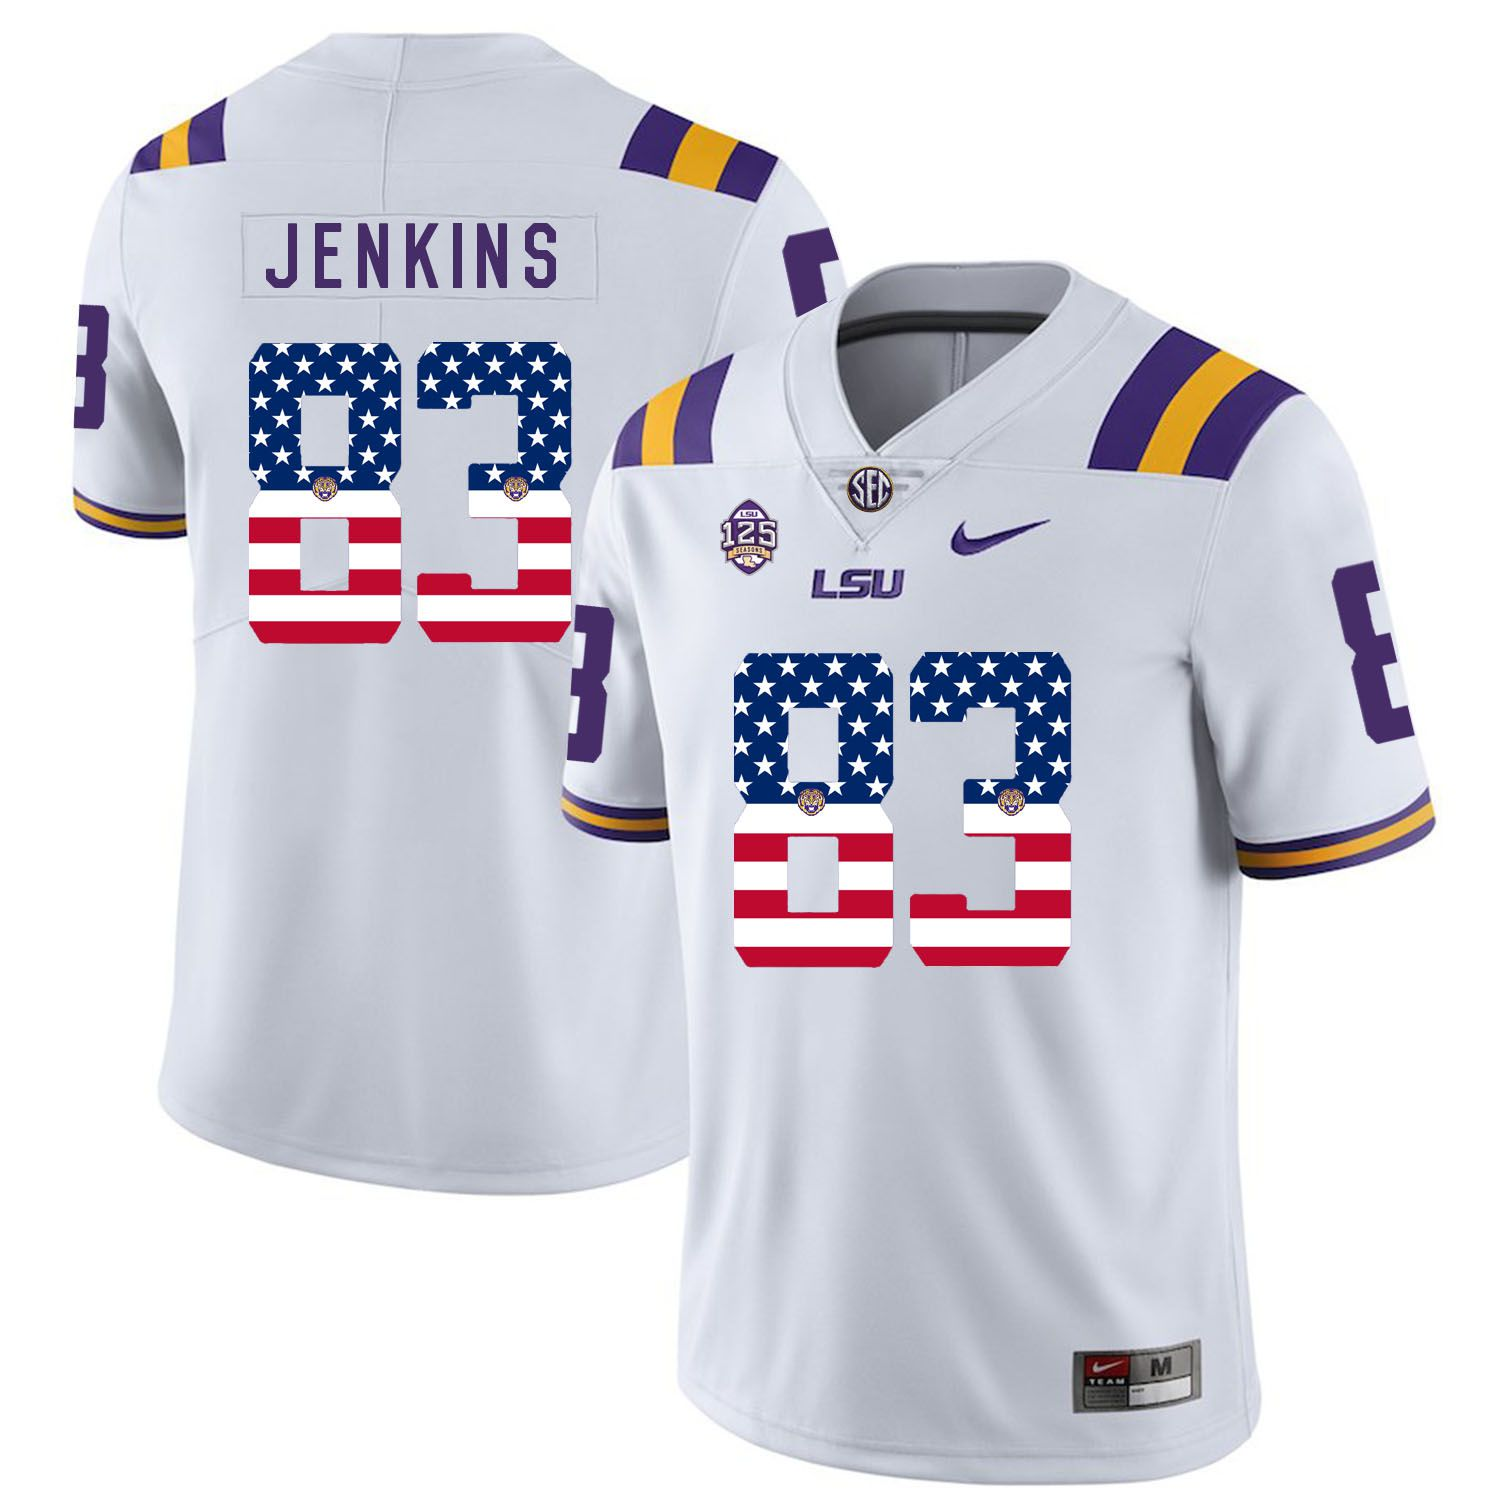 Men LSU Tigers 83 Jenkins White Flag Customized NCAA Jerseys